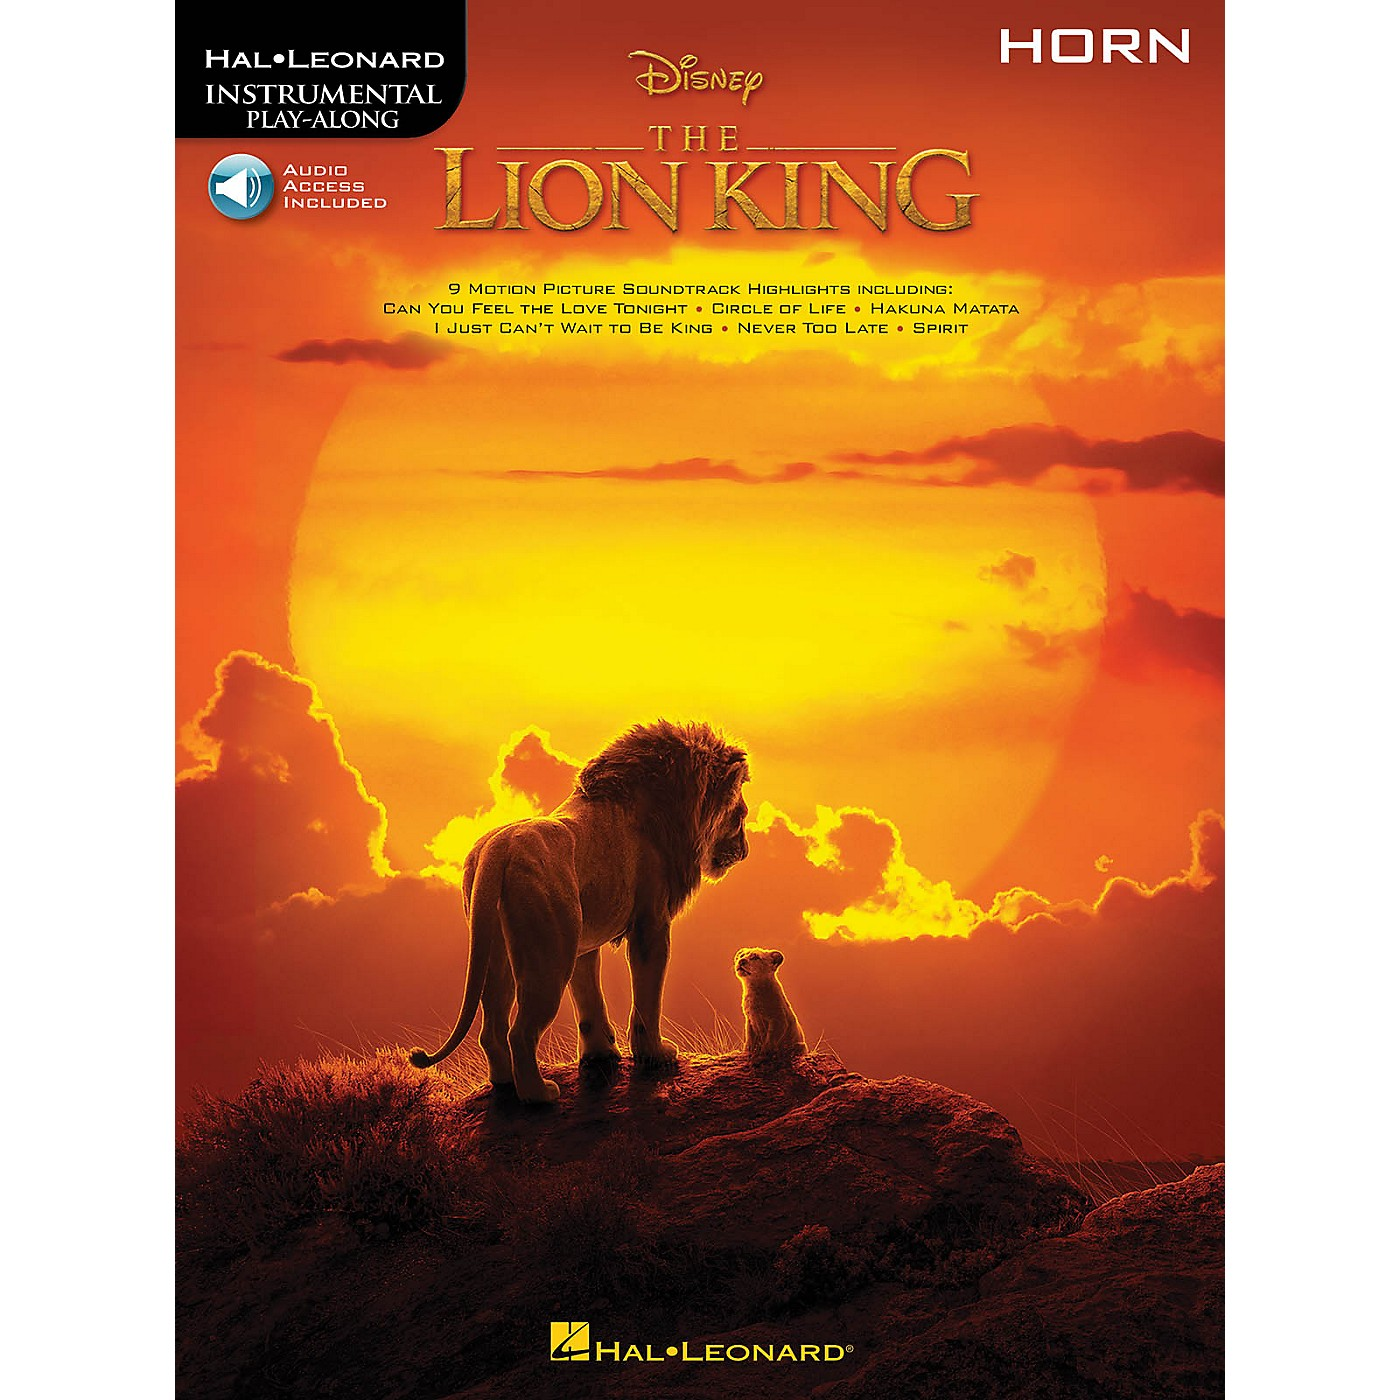 Hal Leonard The Lion King for Horn Instrumental Play-Along Book/Audio Online thumbnail